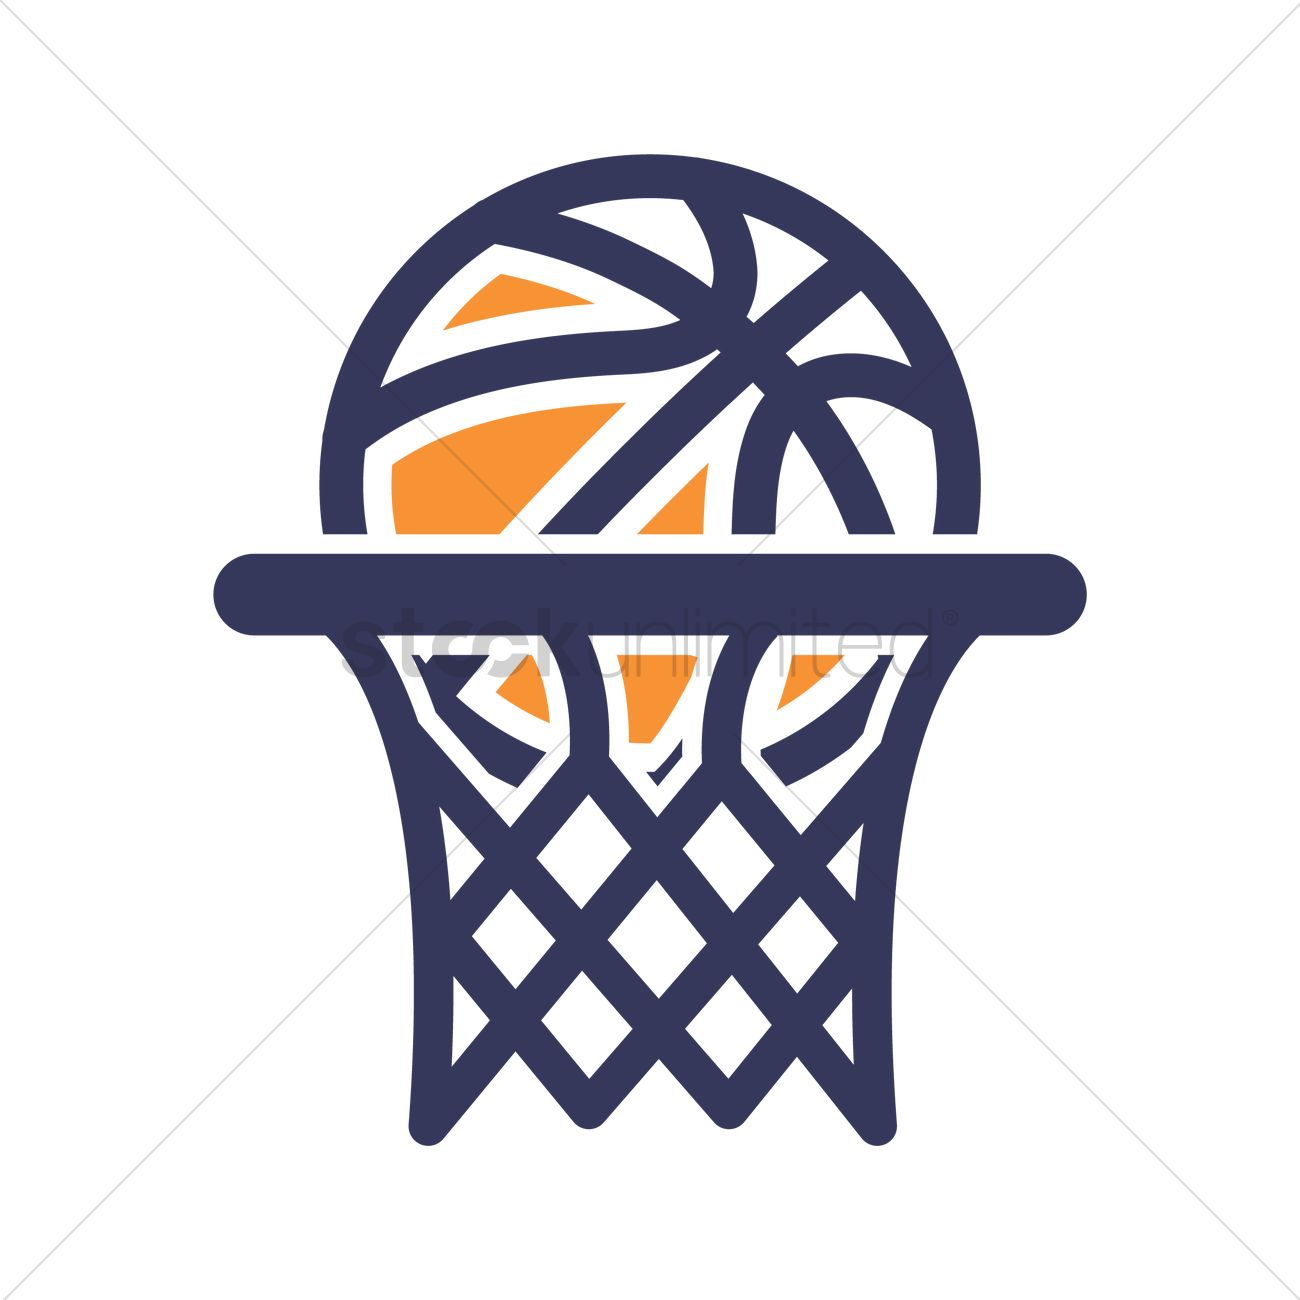 Basketball Hoop Icon Vector Image 1984920 Stockunlimited